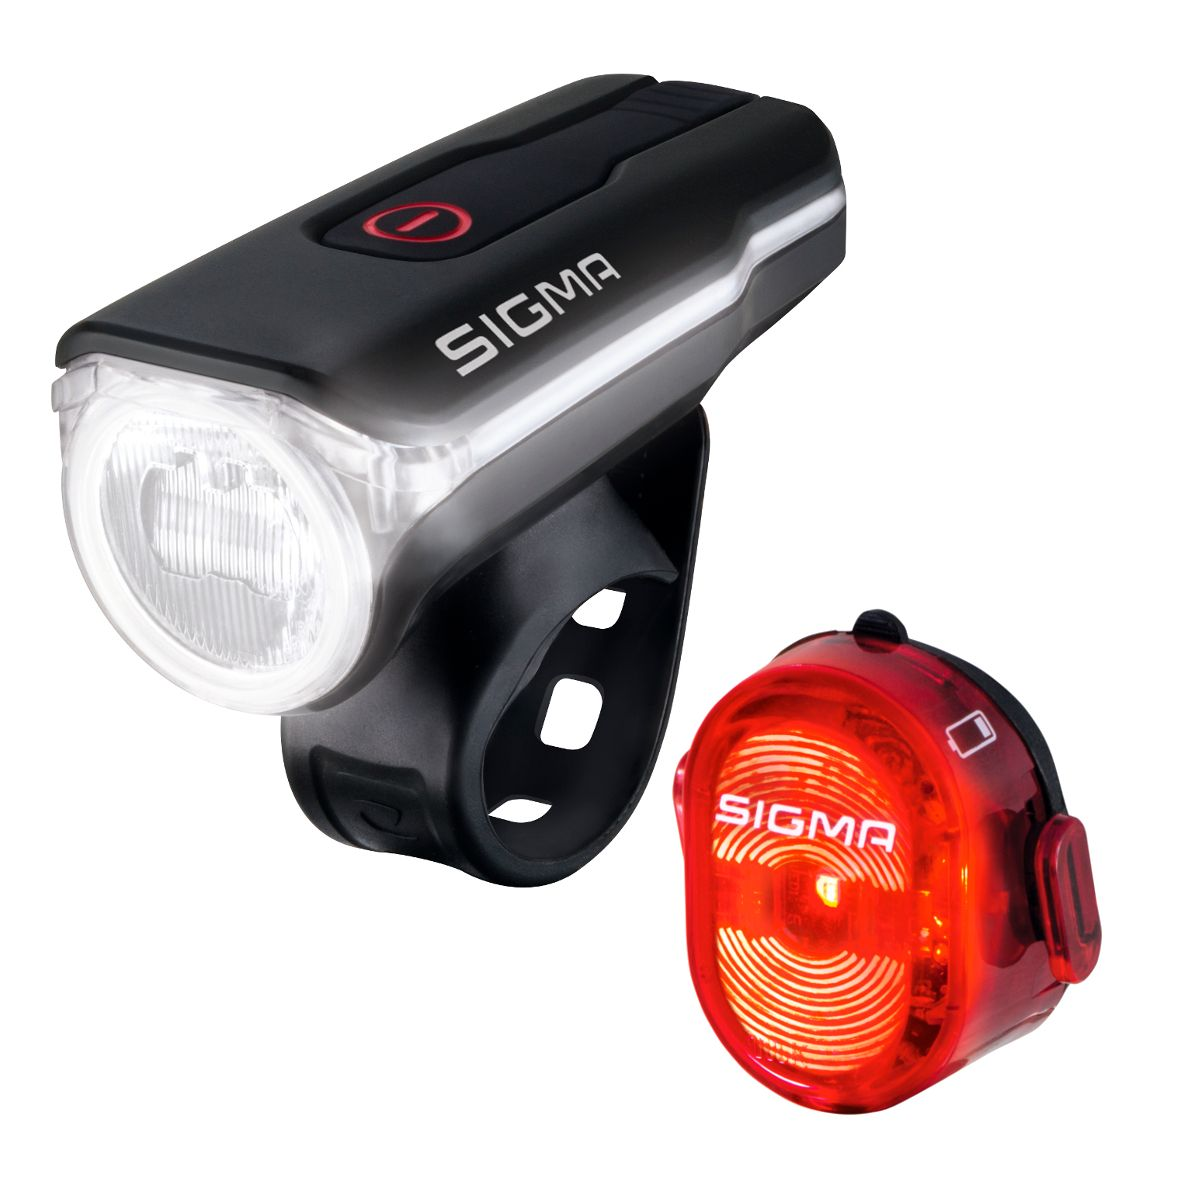 Aura 60 front light / Nugget II rear light set